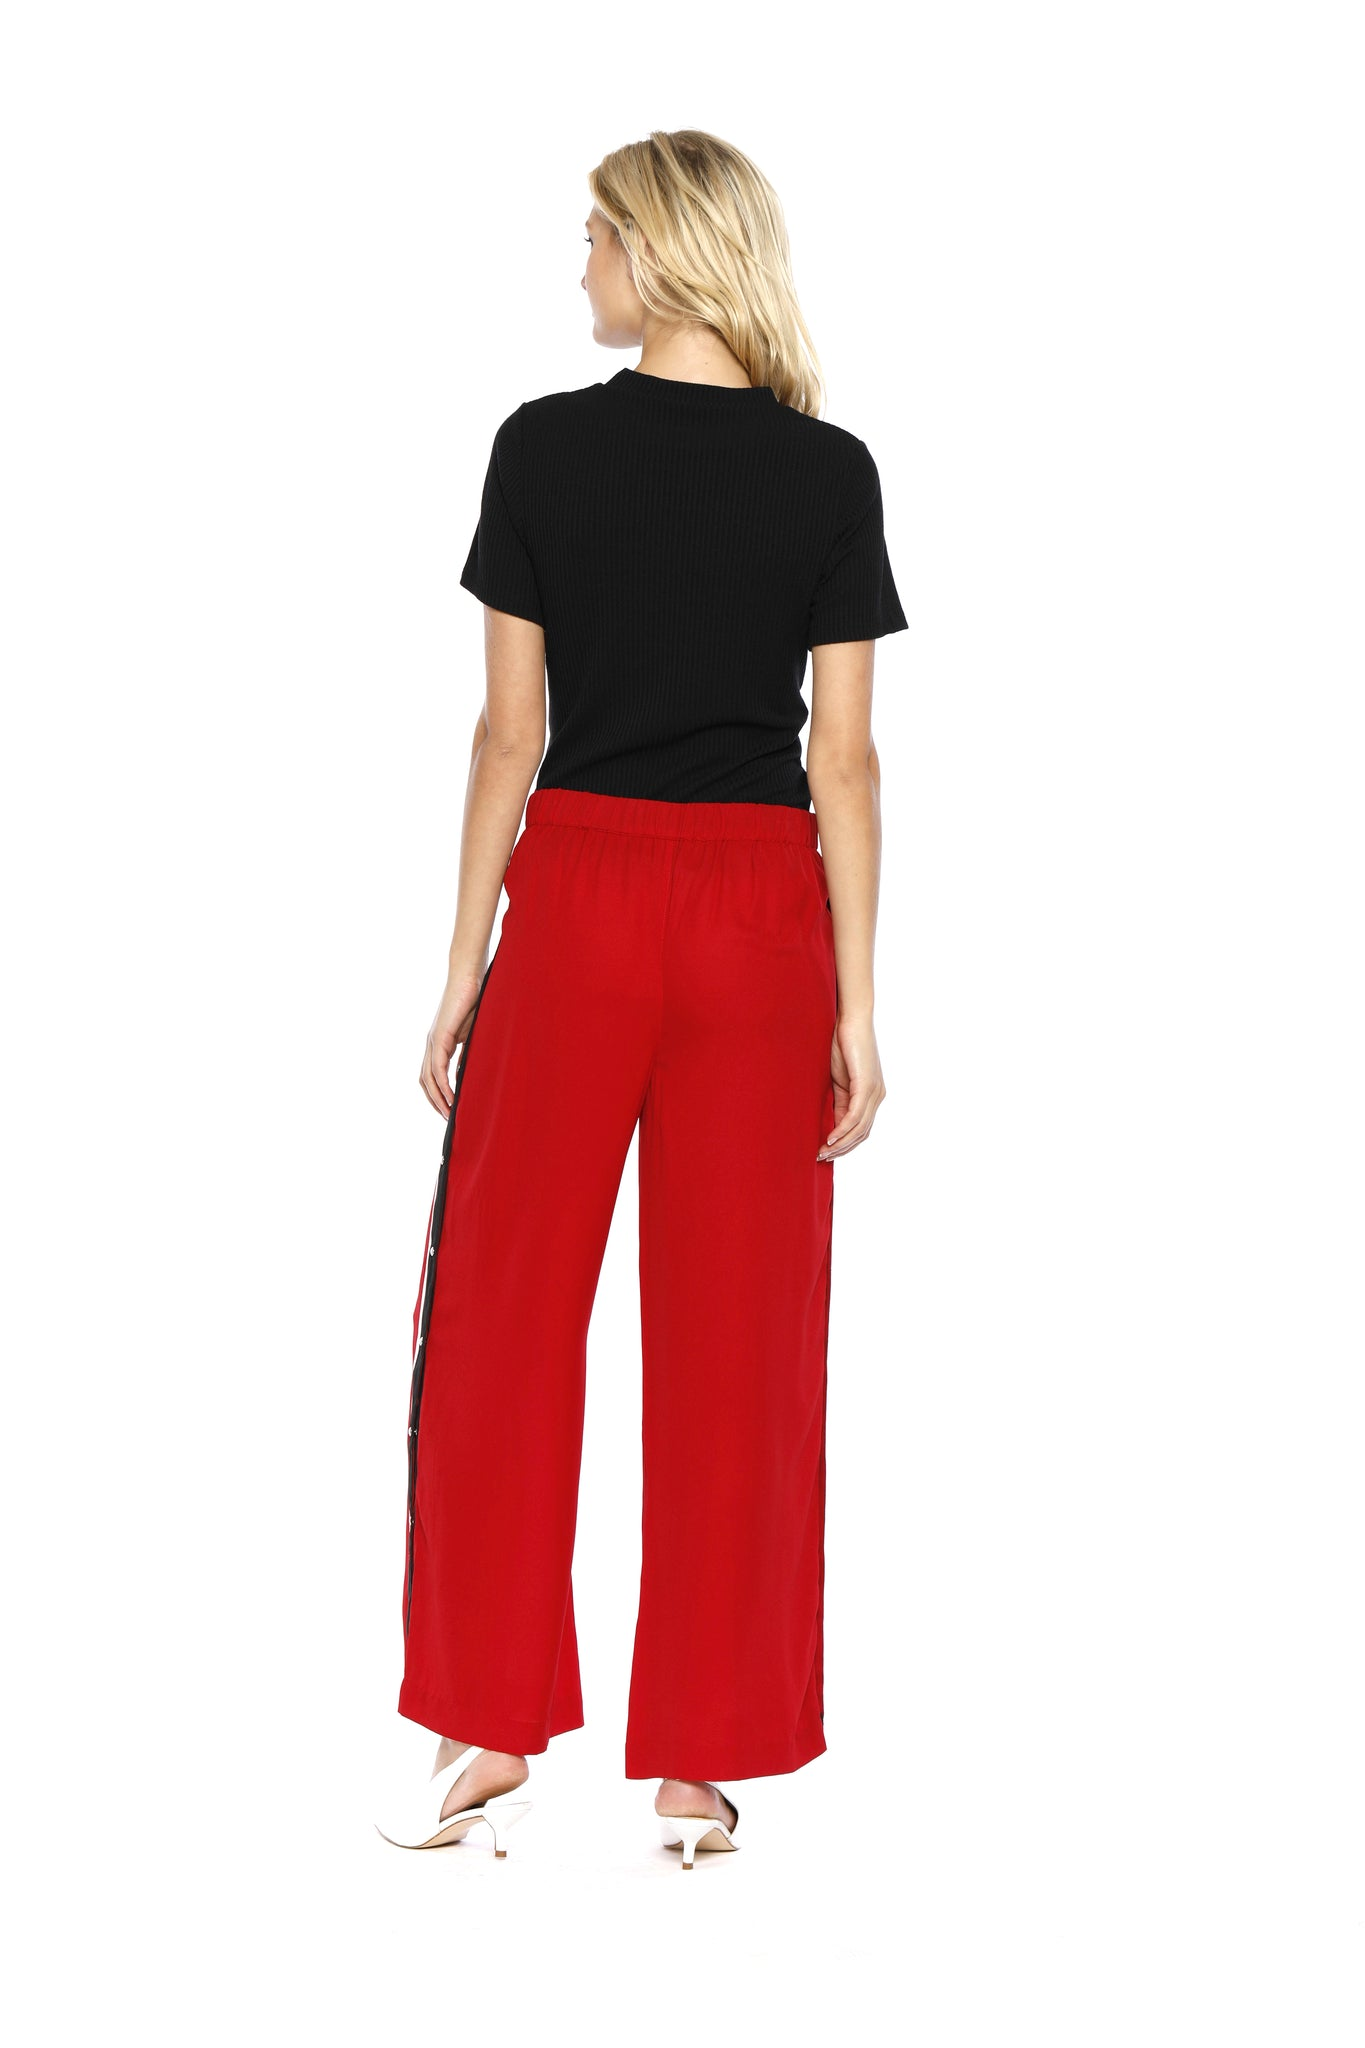 Back view of Maxine Pant, red retro pants with buttons on the side and a black stripe outlined with white borders on both sides, 100% Polyester and Machine-washable.